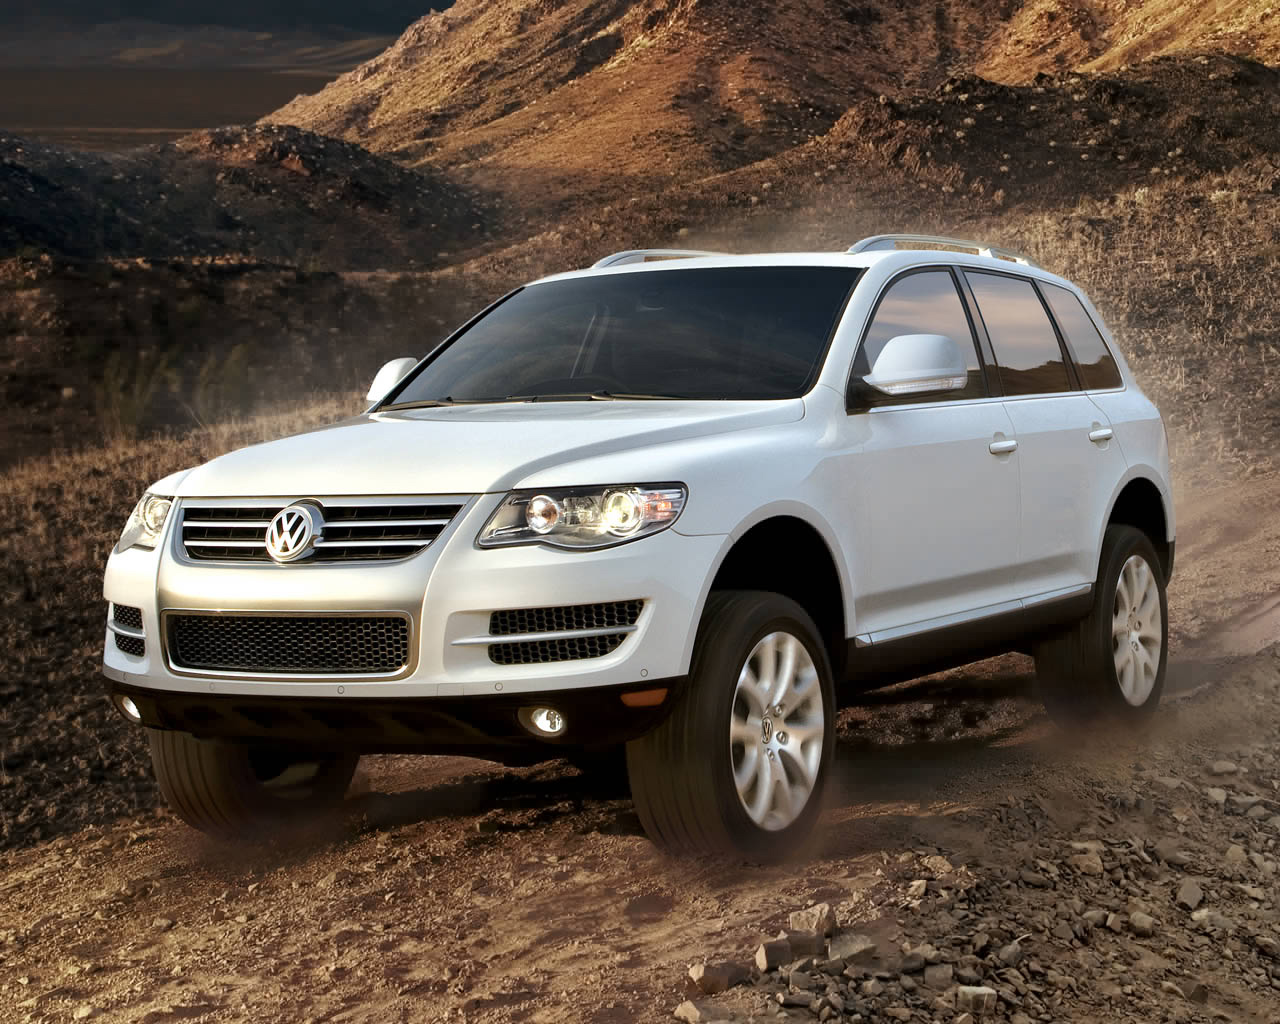 volkswagen touareg review 2010 small attractive suv ebest cars. Black Bedroom Furniture Sets. Home Design Ideas